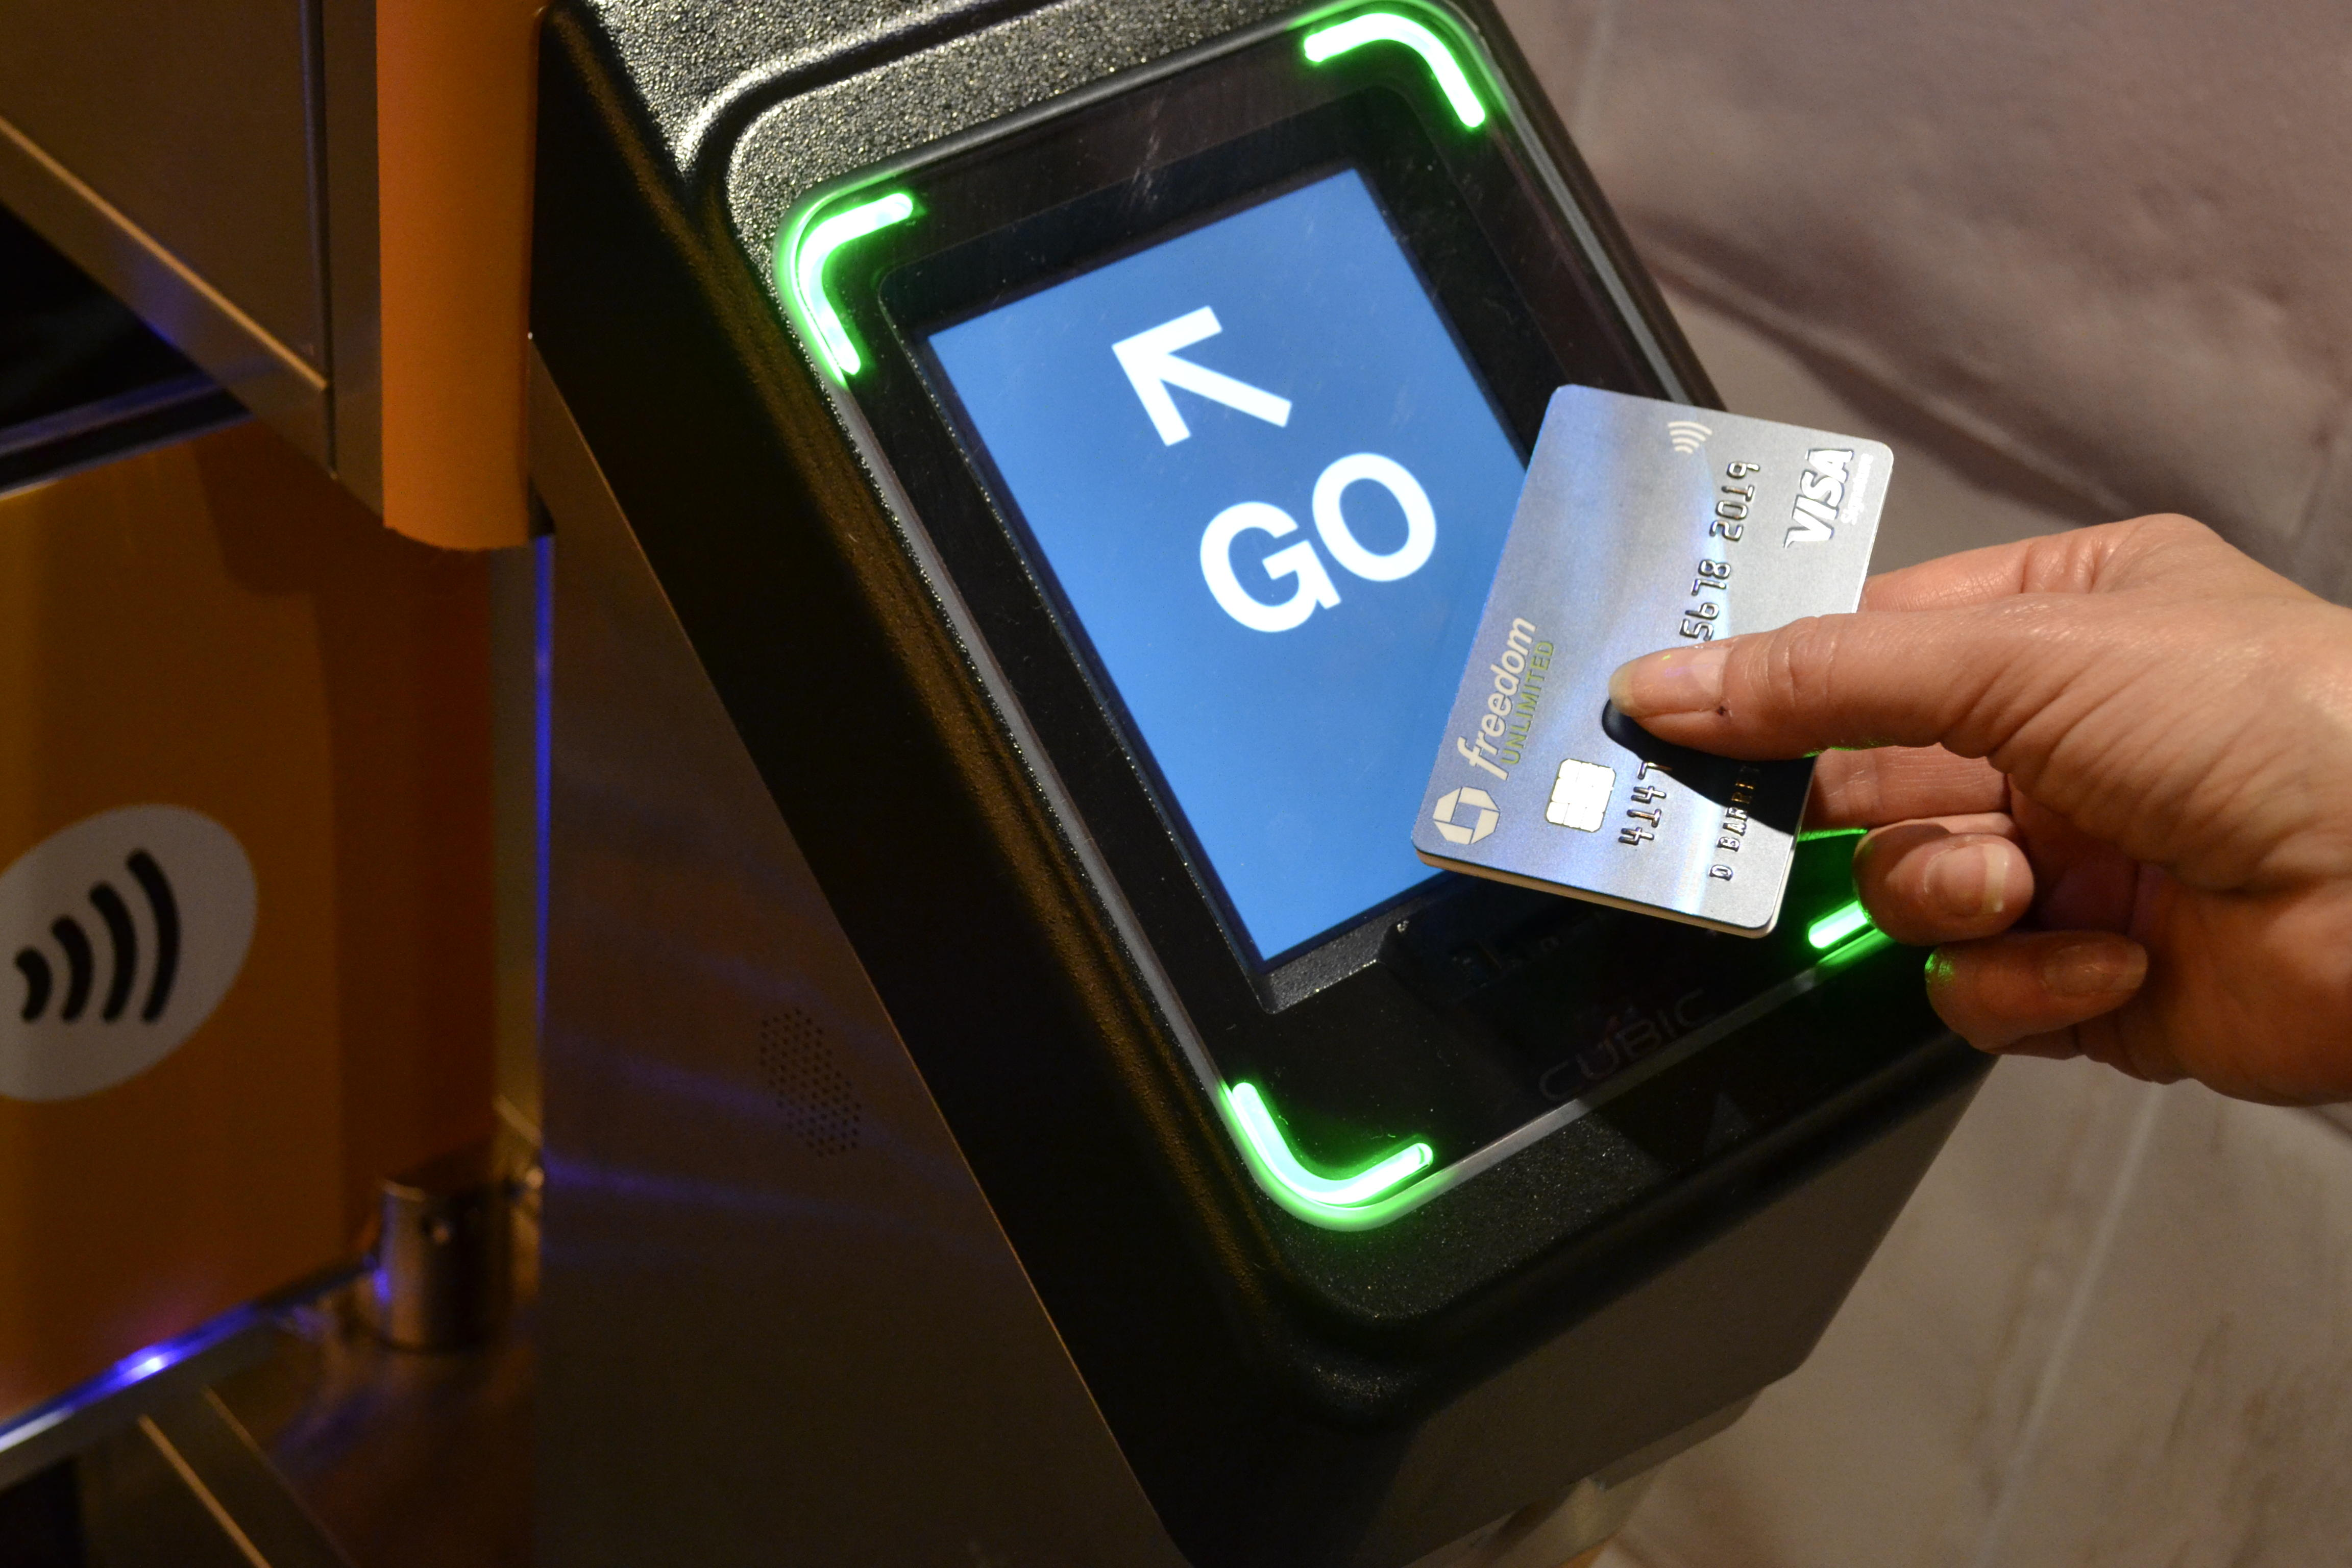 tap-to-pay-card-contactless-1